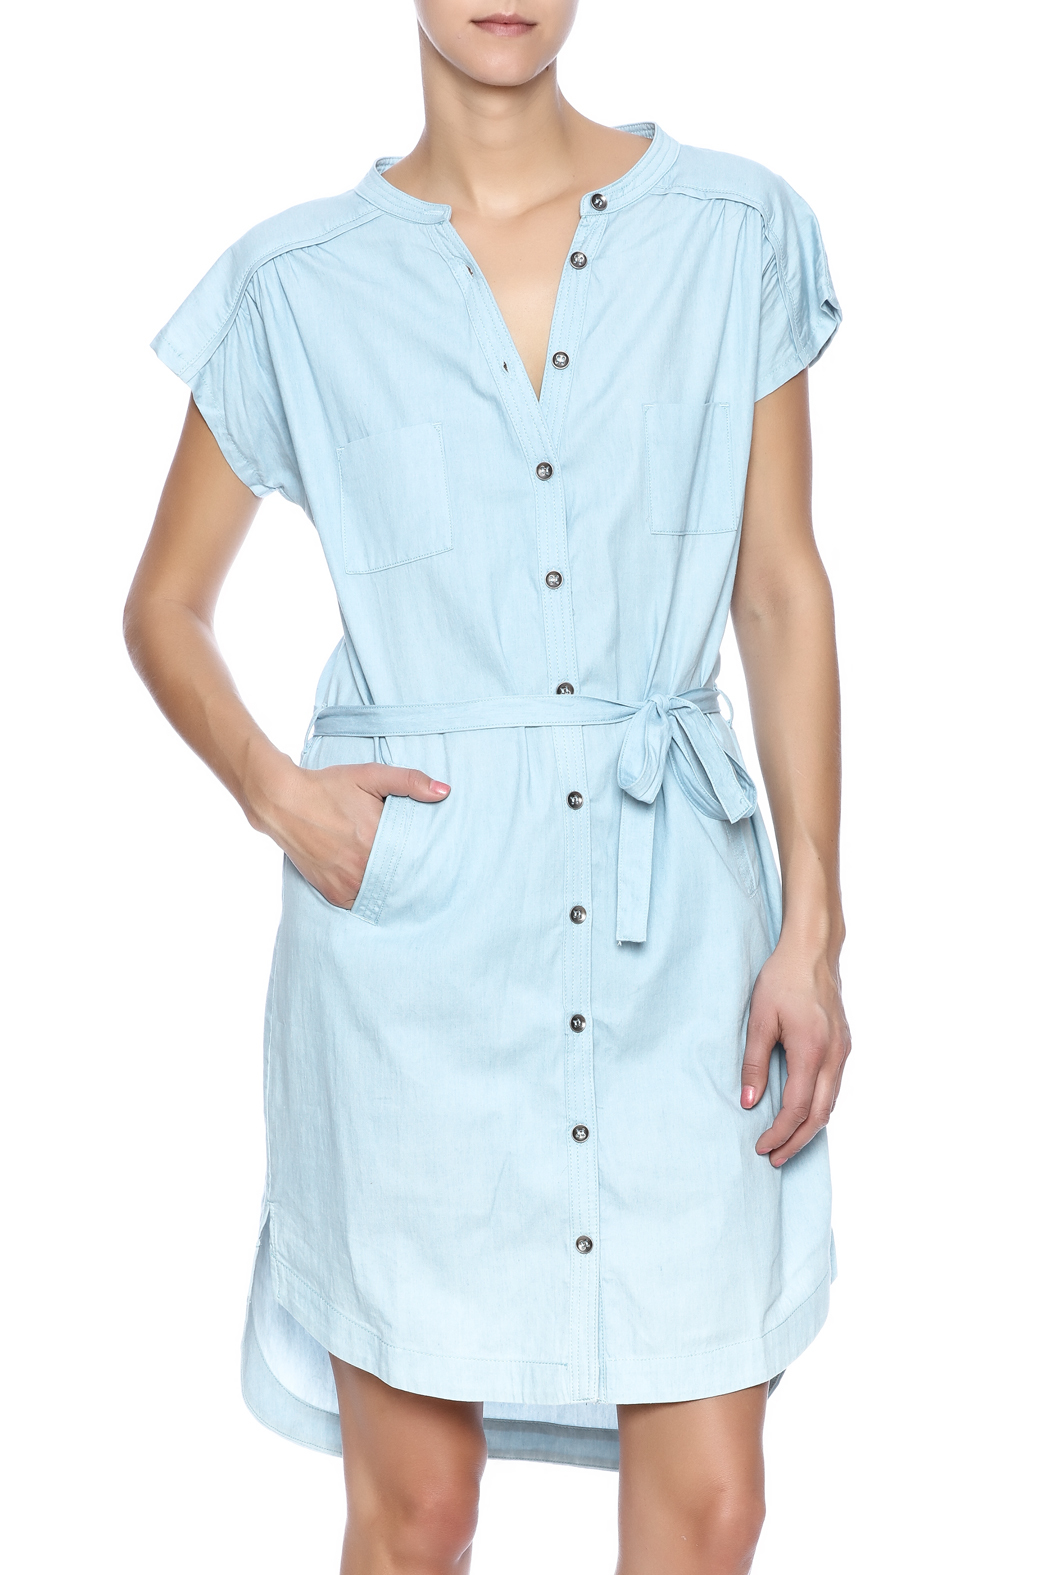 Pink Martini Casual Button Down Dress - Main Image